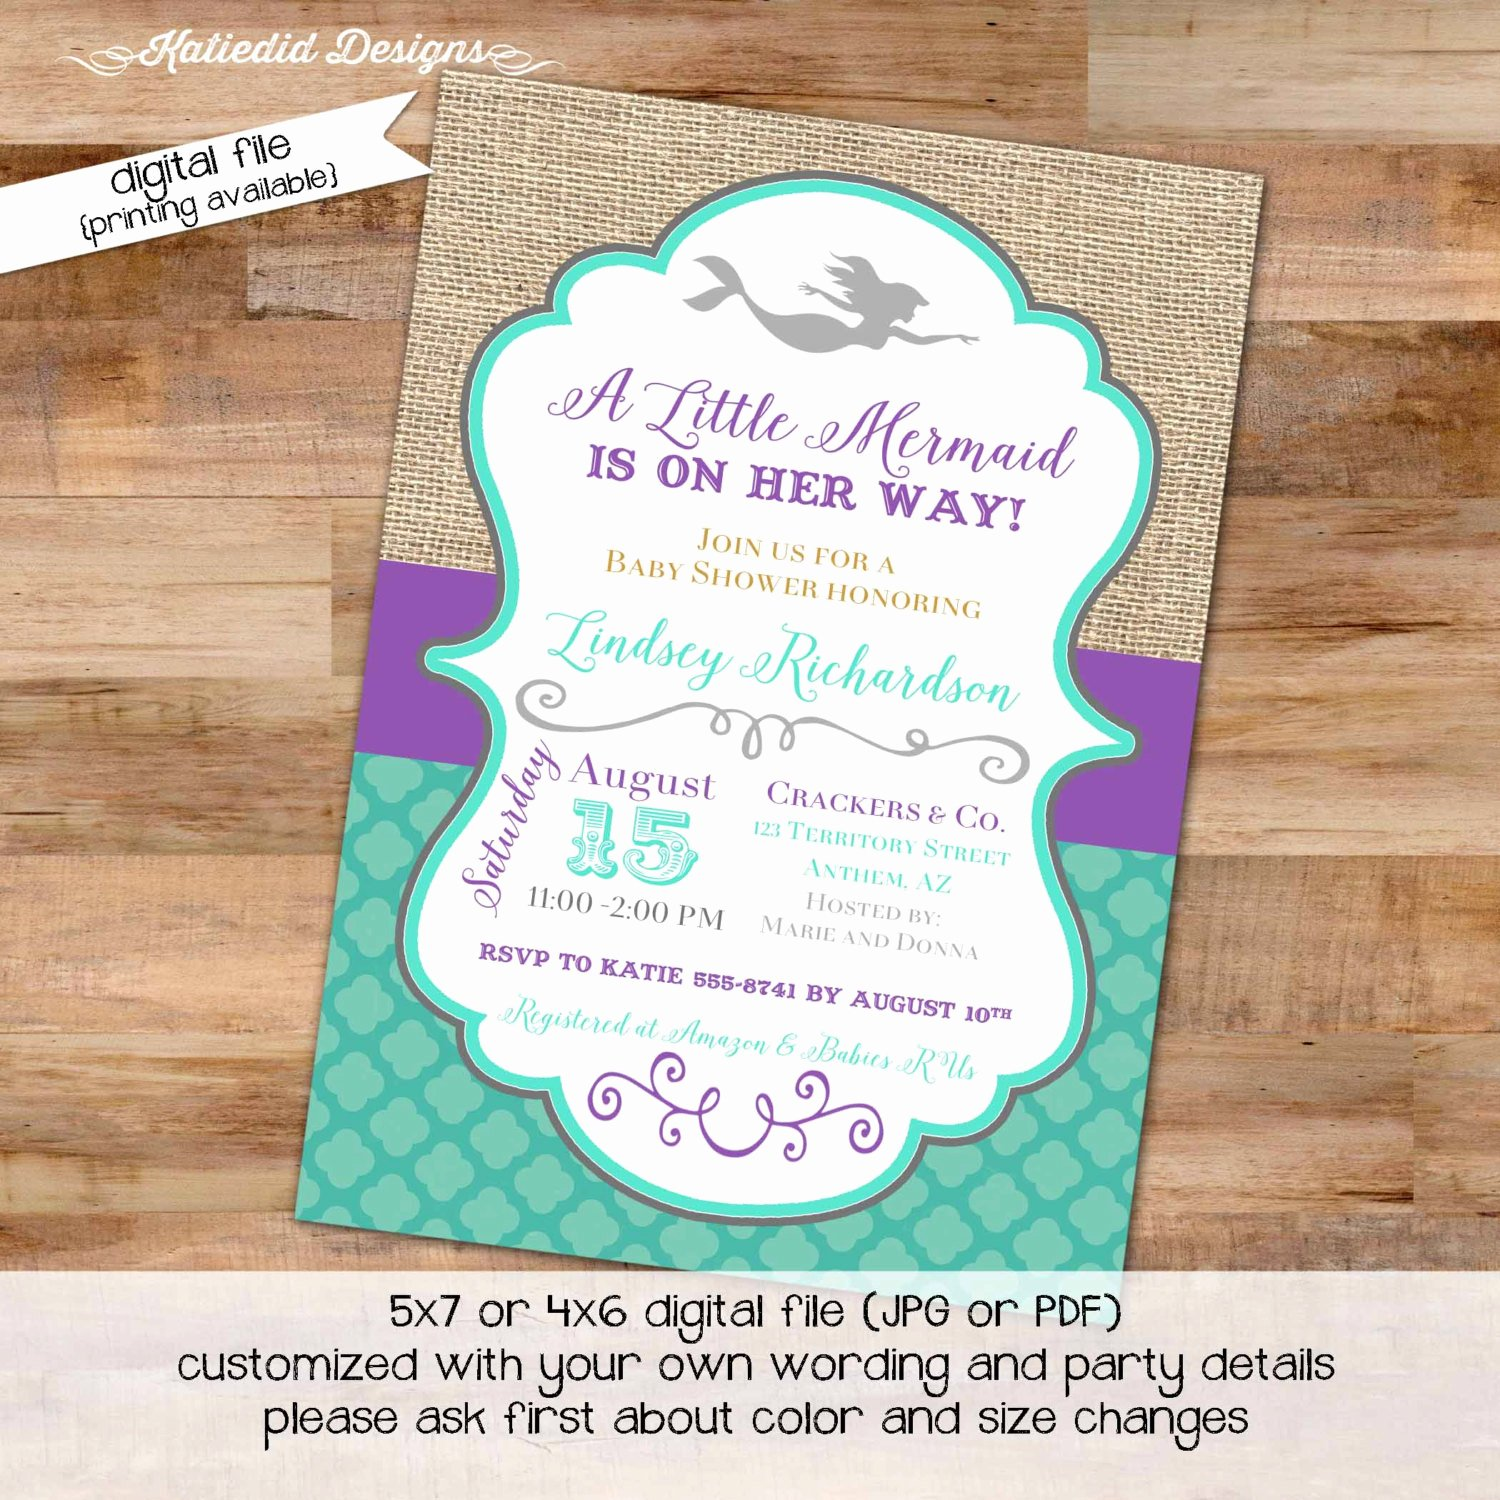 Mermaid Baby Shower Invitations Lovely Mermaid Baby Shower Invitation Bridal Shower Under the Sea